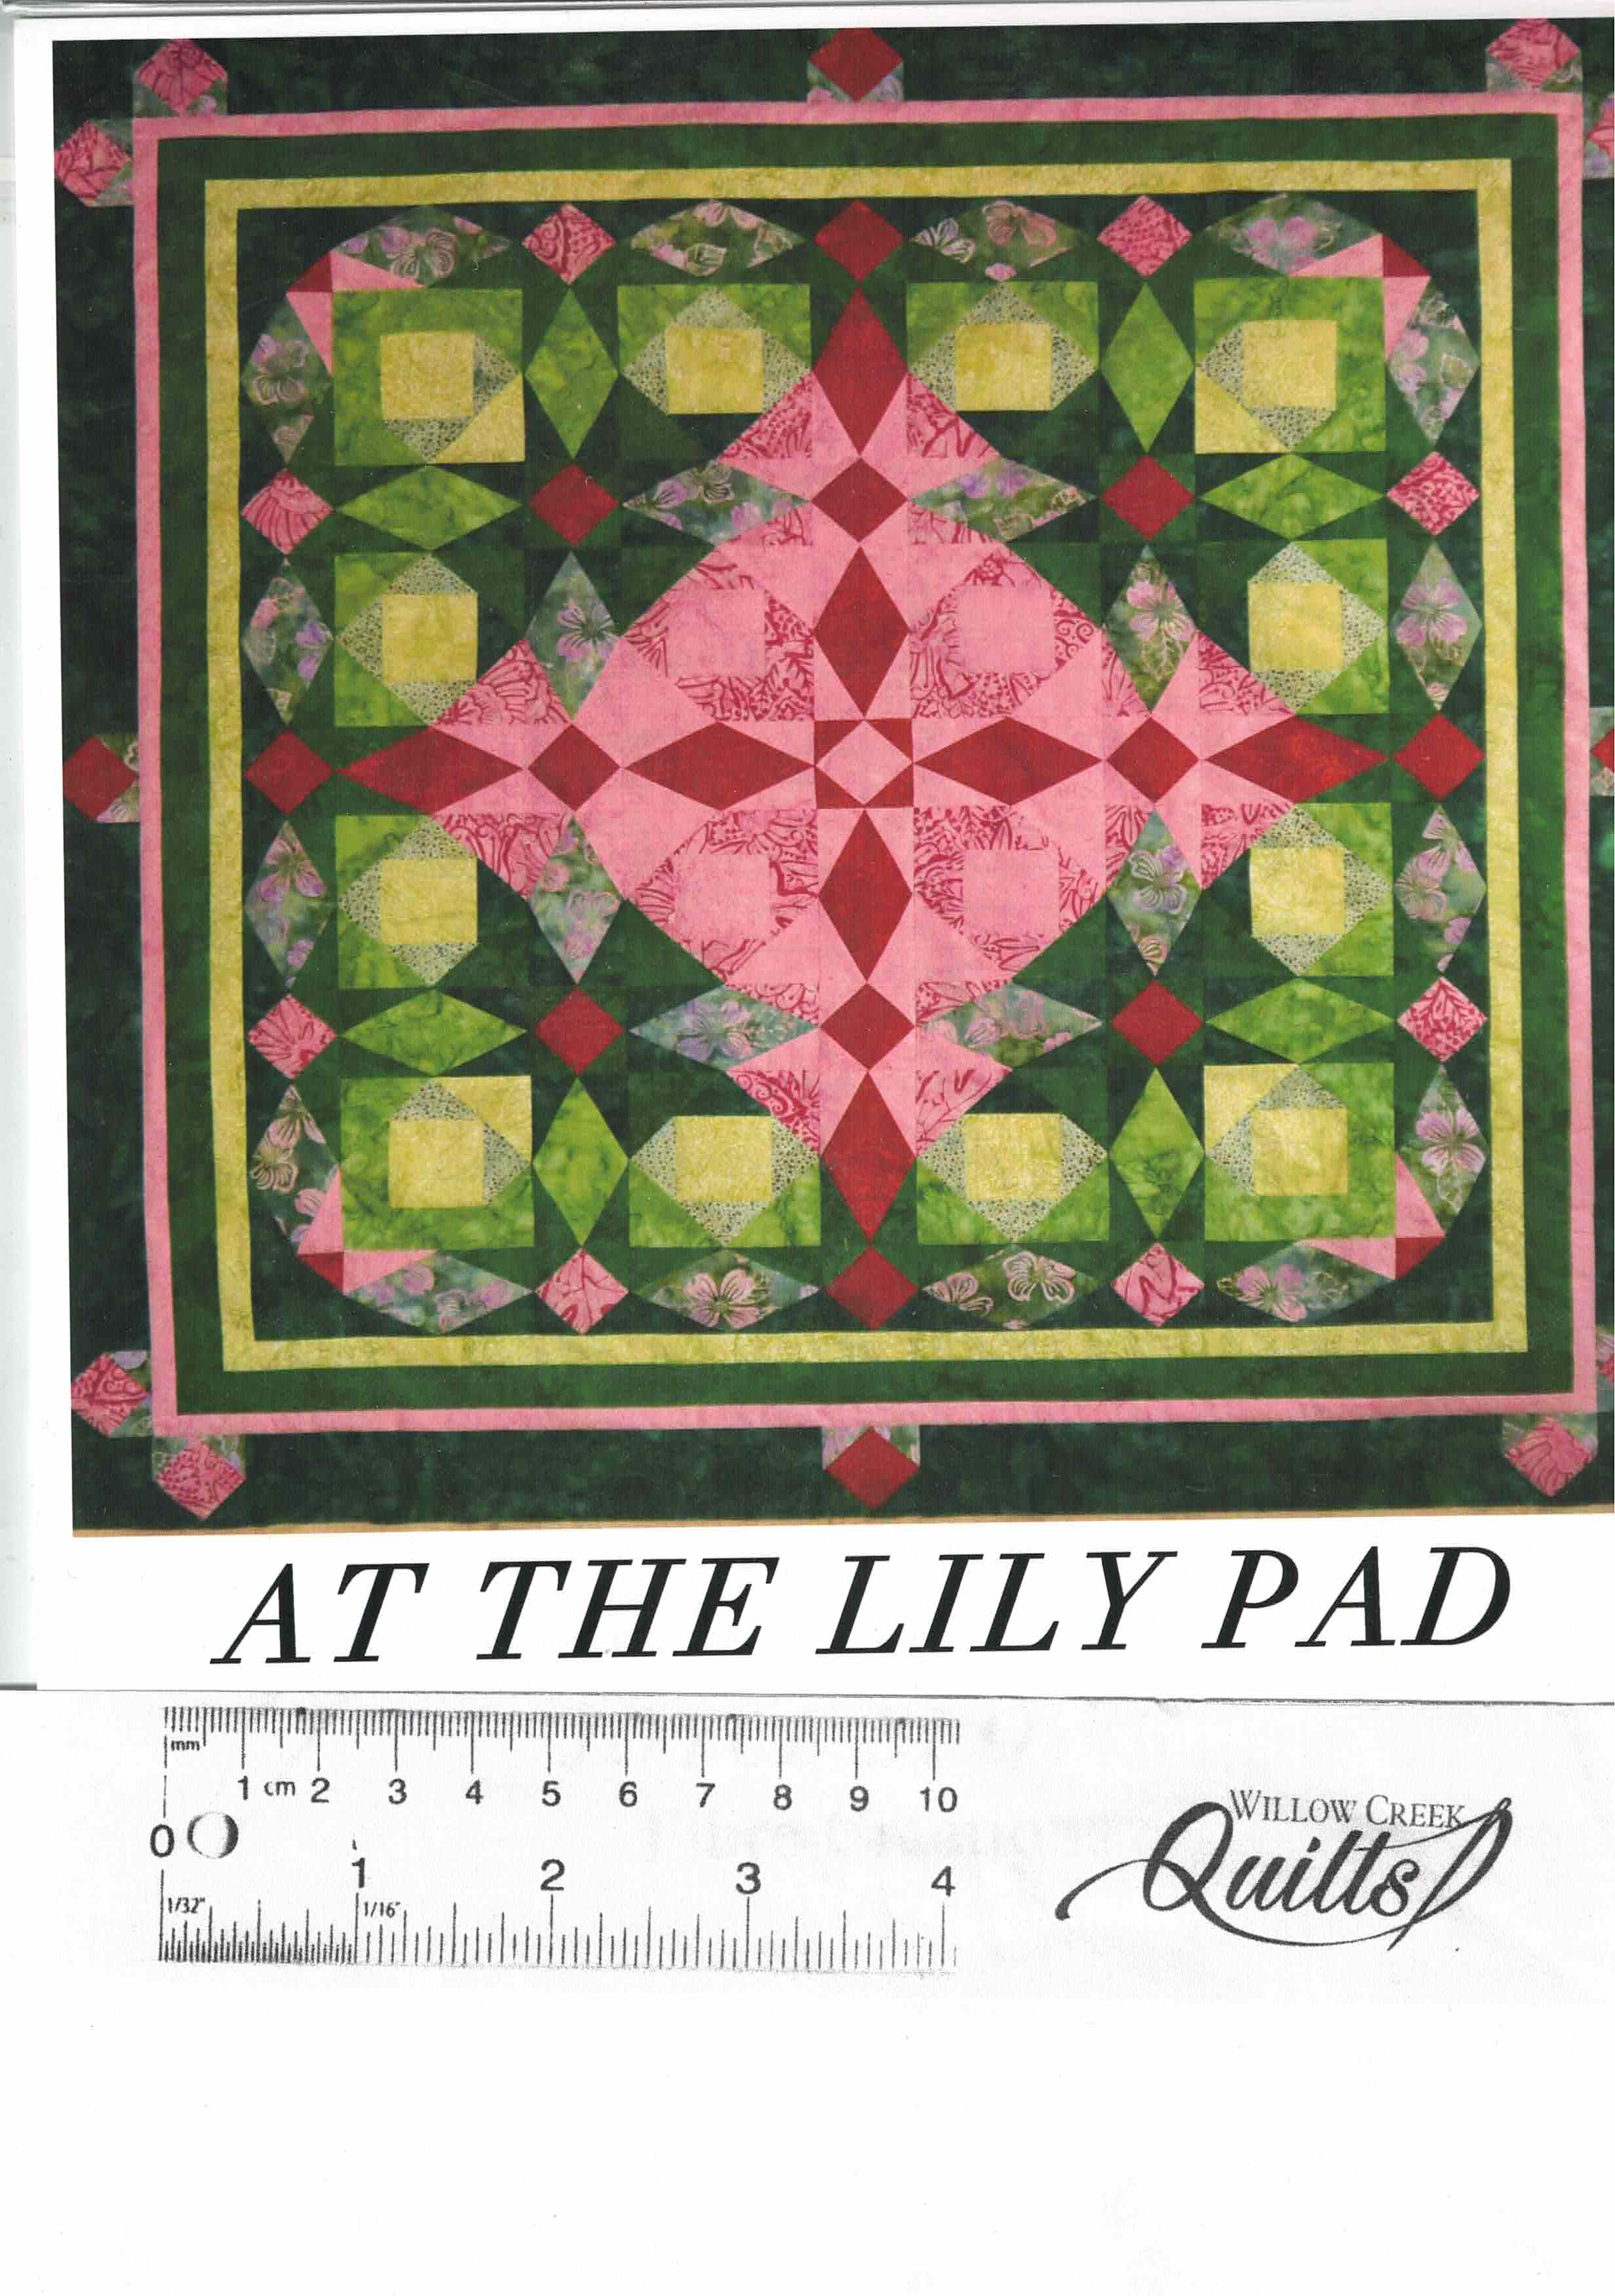 At The Lily Pad quilt pattern - 27068759